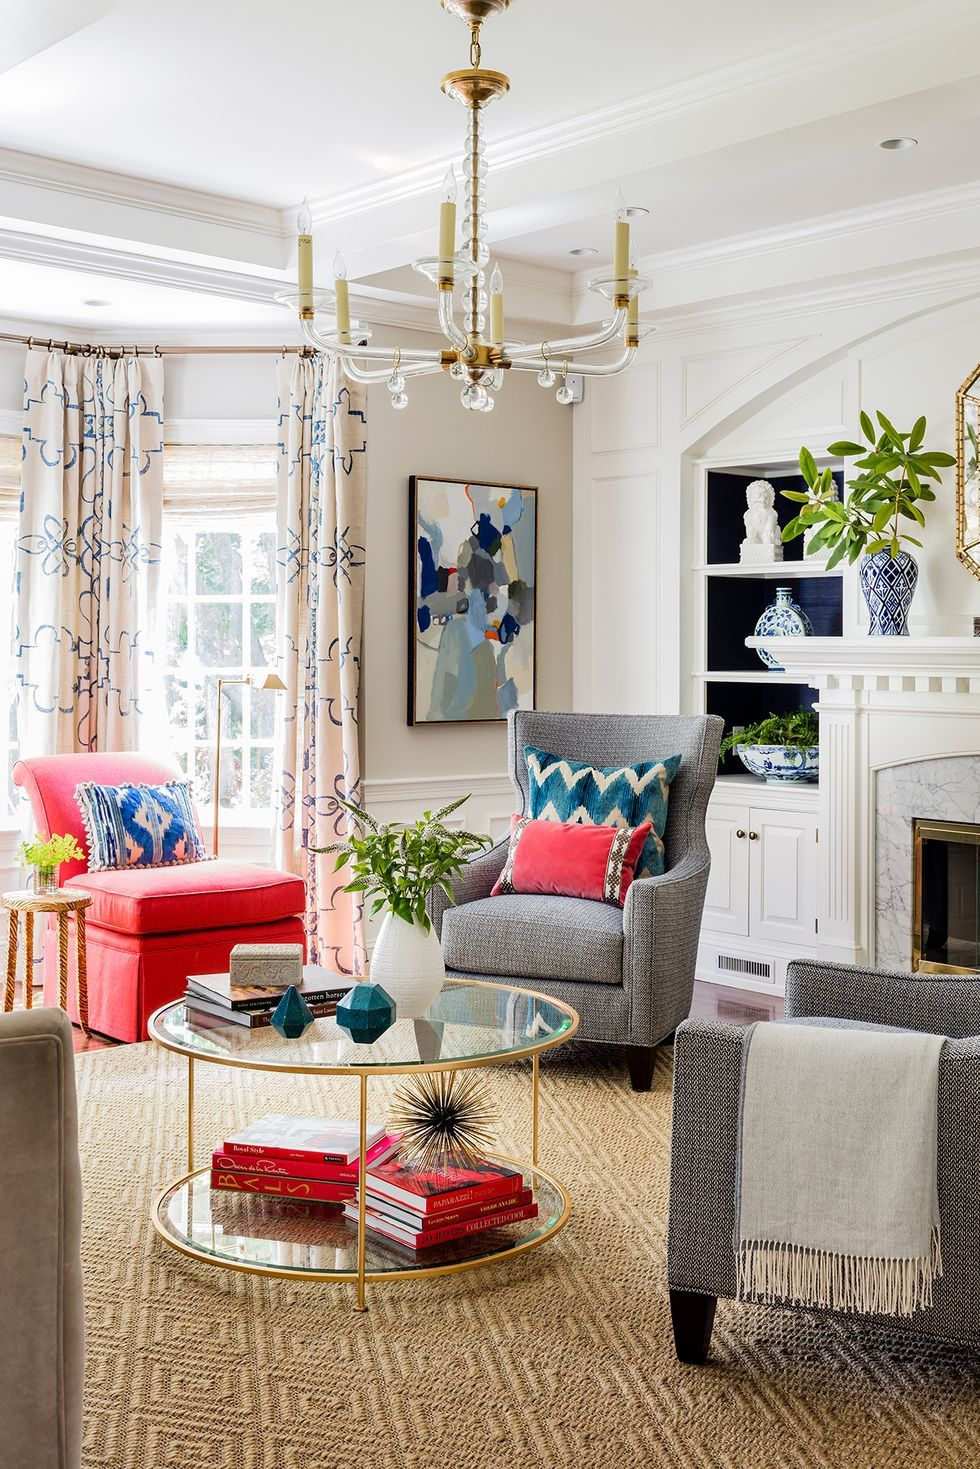 20 Easy Coffee Table Styling Tricks To Try Now In 2020 Small Living Room Decor Stylish Living Room Living Room Designs #small #living #room #remodeling #ideas